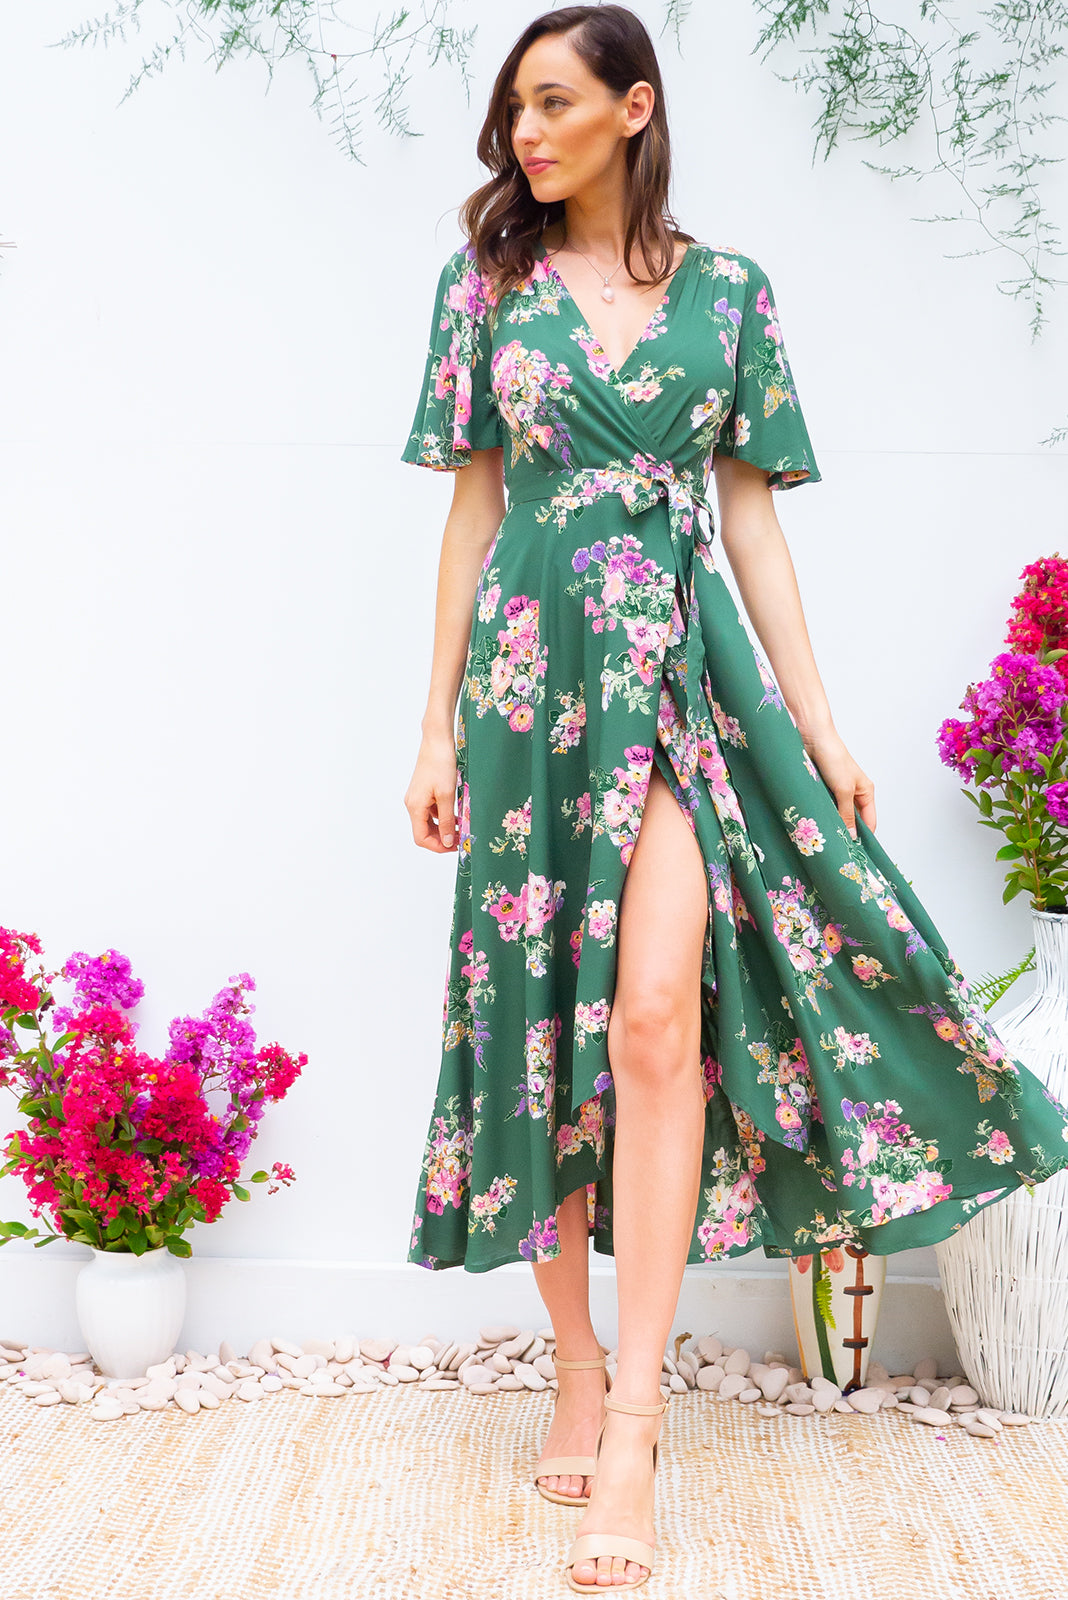 Petal Zinnia Green Maxi Wrap Dress dress features a flattering wrap around waist, petal sleeves, and a shorter at the front hemline and comes in a soft forest green with a delicate bohemian floral  bouquet print on rayon